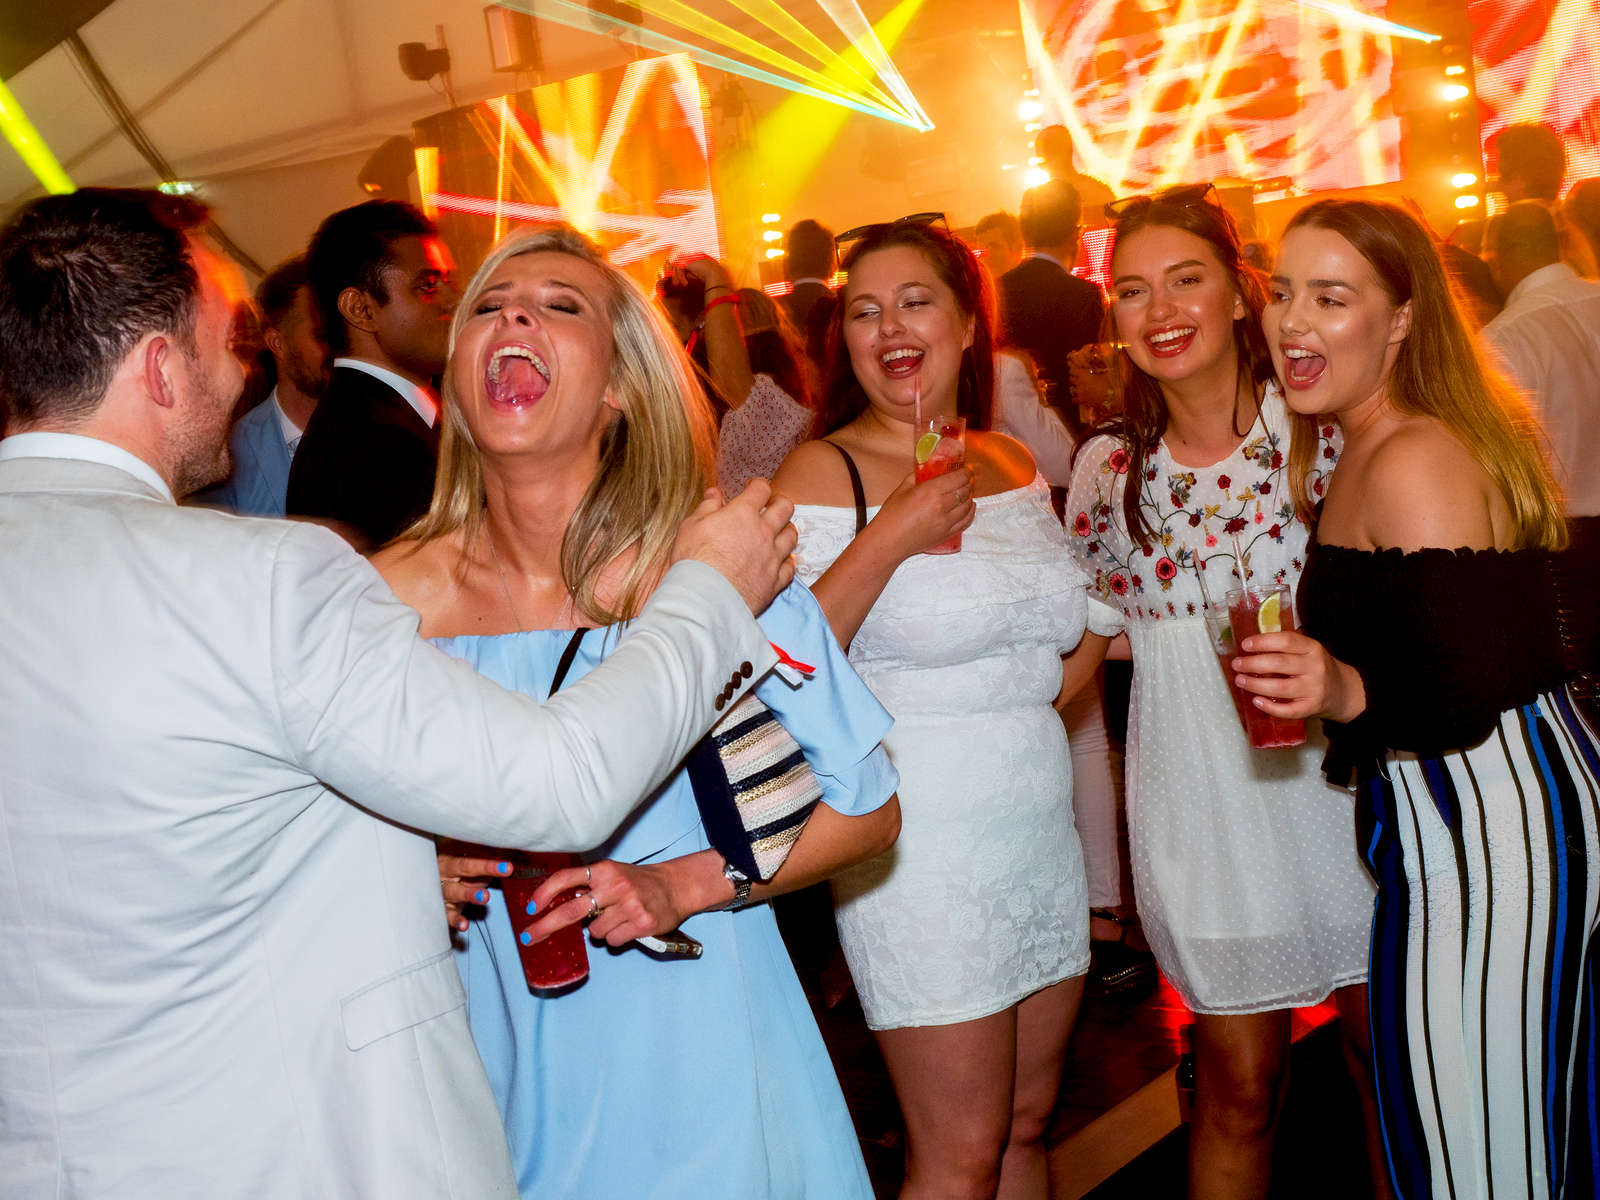 Revellers at a party hosted by the Chinawhite nightclub at Henley.Henley Royal Regatta is a rowing event held annually on the River Thames by the town of Henley-on-Thames, England. It was established on 26 March 1839.